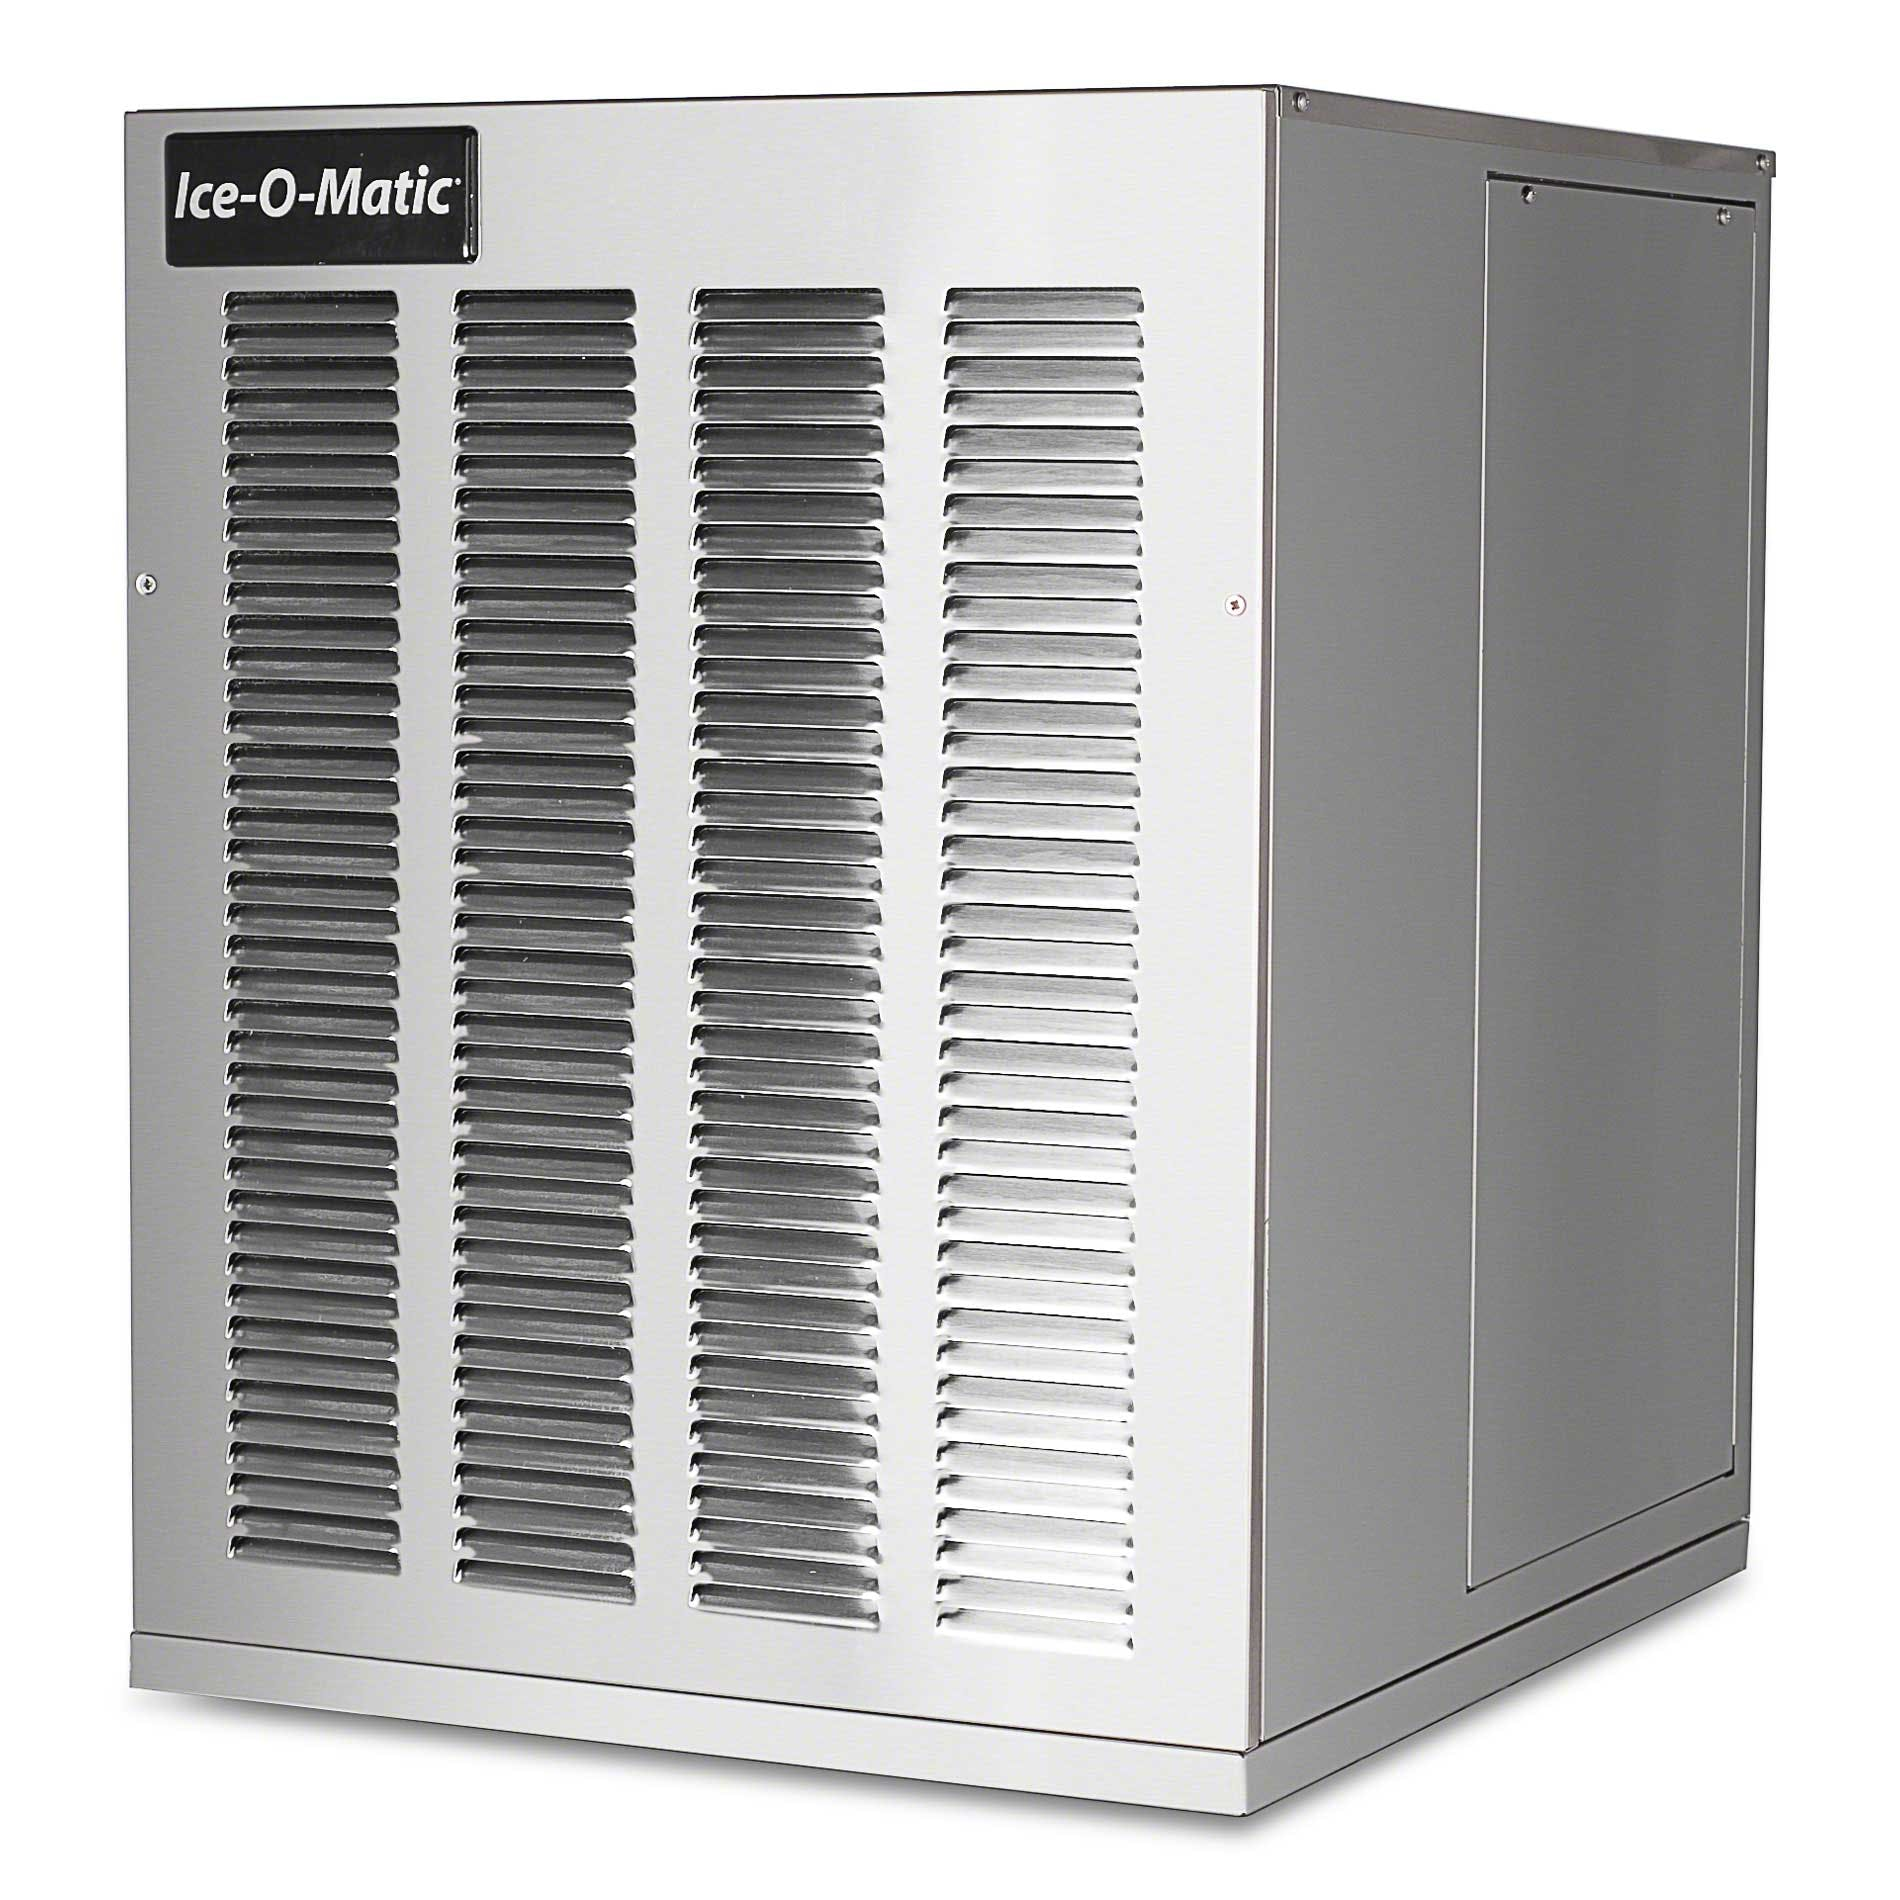 Ice-O-Matic - GEM0450W 508 lb Modular Pearl Ice Machine - sold by Food Service Warehouse